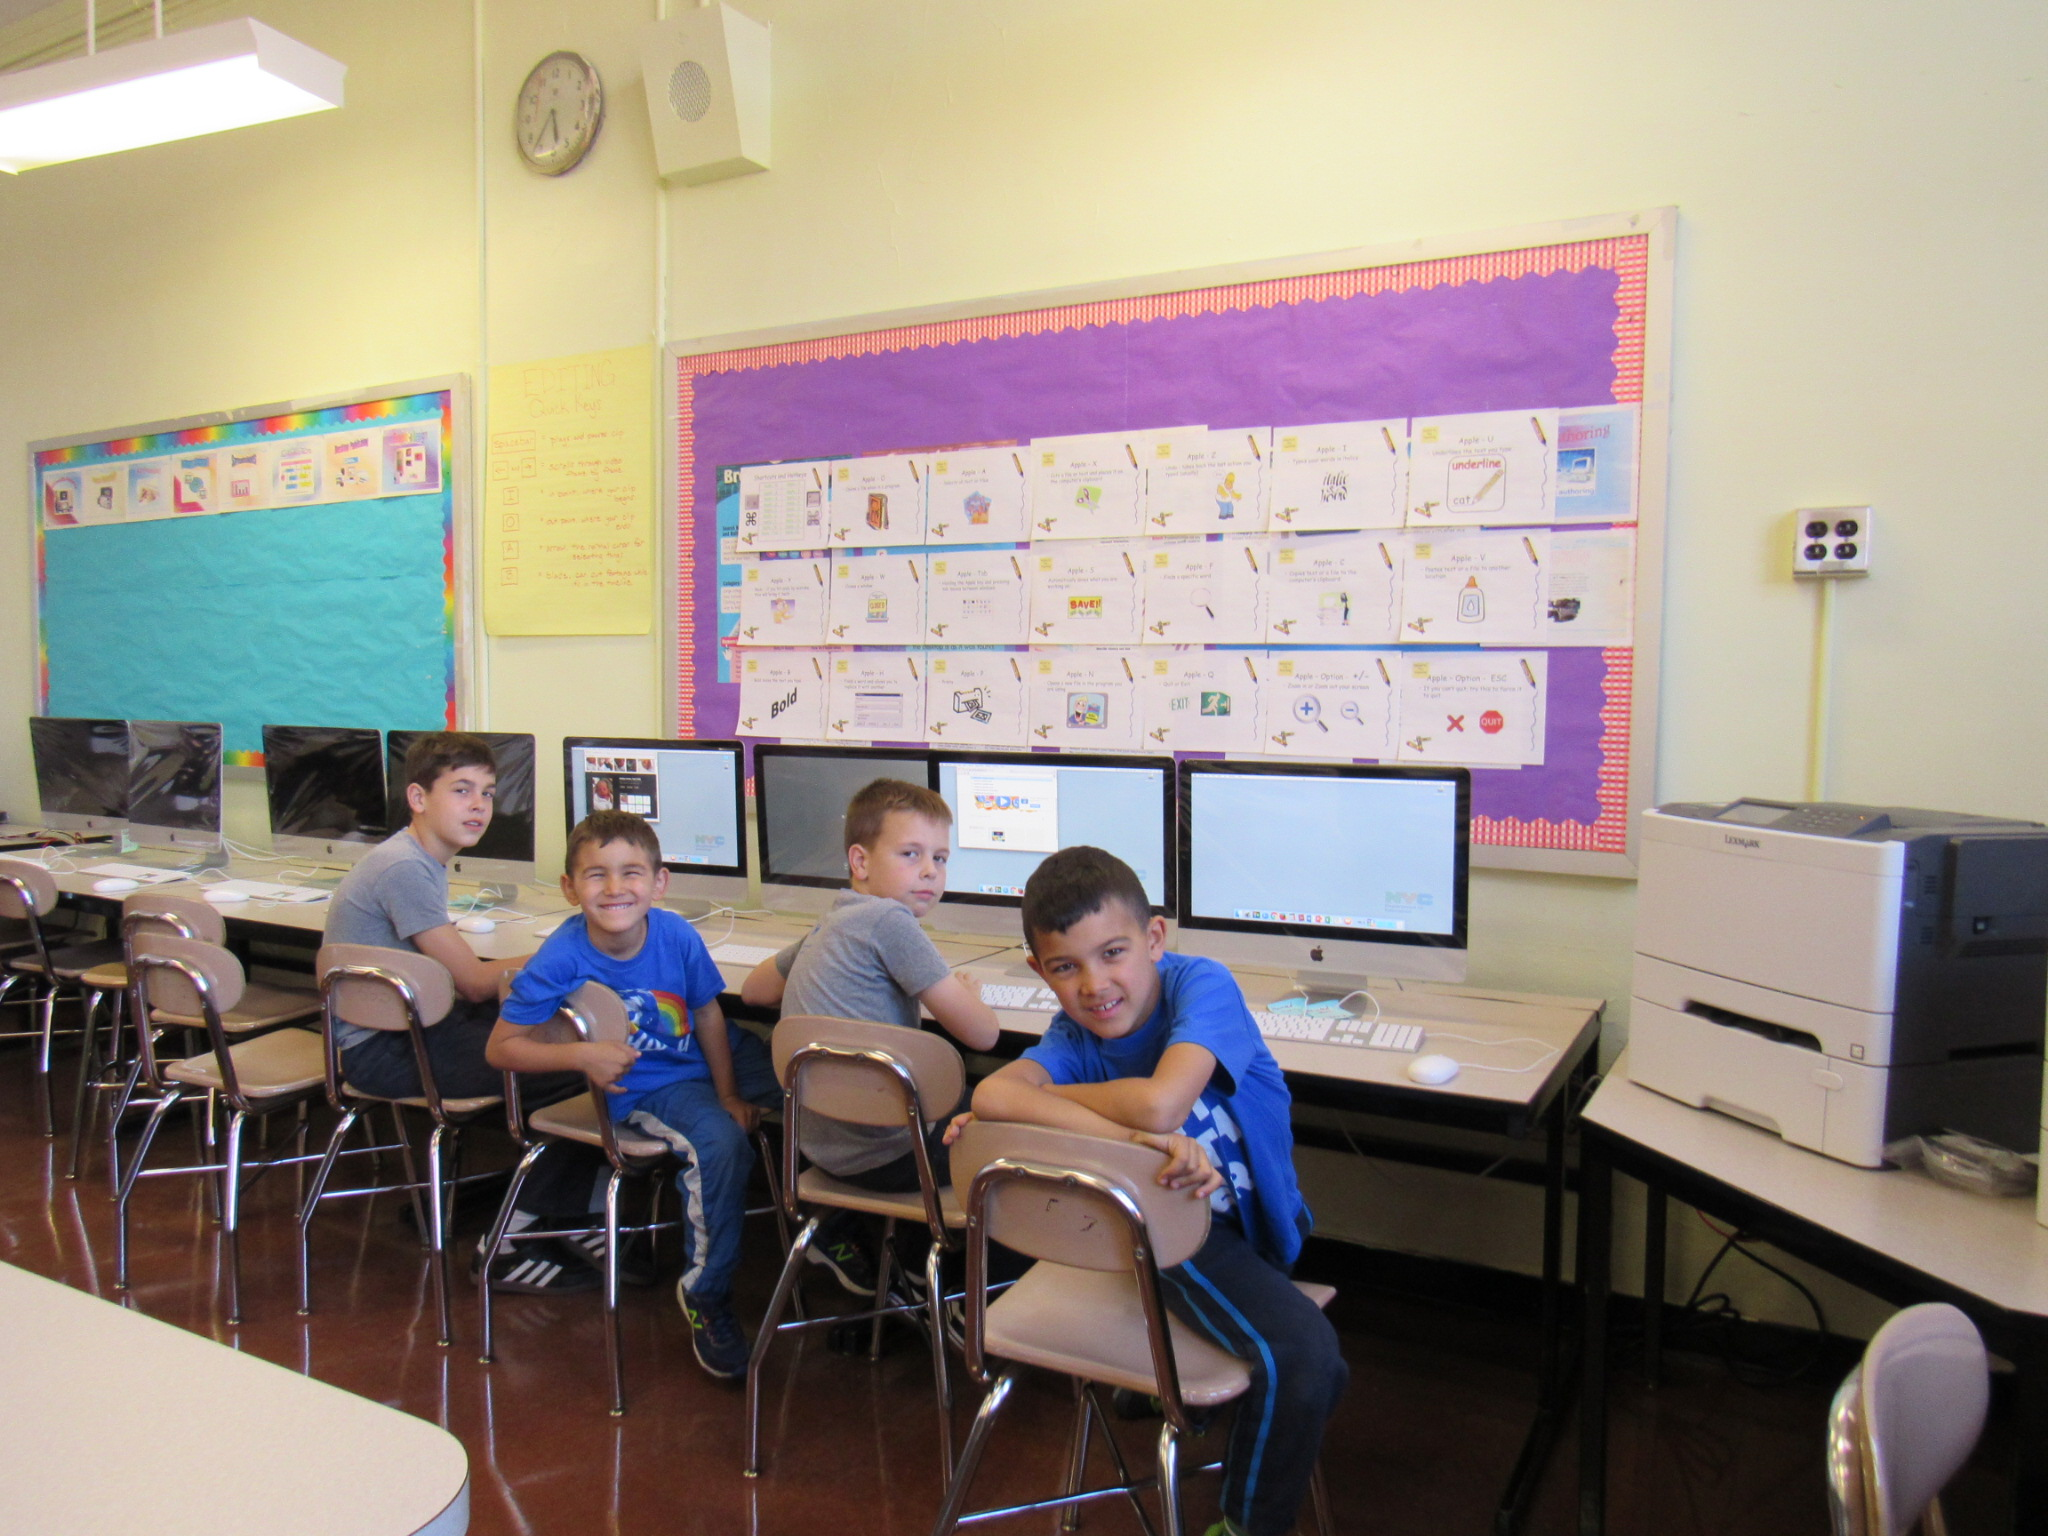 our computer lab - At P. S. 110, we believe that computer technology is a valuable tool to enhance teaching and learning. Our students use a variety of technologies to access, analyze, interpret, synthesize, apply, communicate and present information. They learn and practice various skills: keyboarding, desktop publishing, creating multimedia projects, digital photography and videography, painting and illustrating, web authoring, creating spreadsheets and databases, graphing and charting, graphic designing, internet researching, and basic programming.We have a dedicated instructional computer lab of 30 iMac workstations networked through an Apple X-server, and we also have deployed 5 mobile carts of iBooks, a total of 80 laptops, on various floors for classrooms to use. Every classroom is wired for internet connection, and each classroom has 2-3 computers. All laptop computers can access the internet wirelessly.Thanks to the RESO A grant, each classroom now has a media cart which houses an Elmo document camera, an LCD projector, a laptop, and a built-in stereo sound system. It is a valuable tool for teachers to use in the classroom for teaching, presentation, demos, and brainstorming.